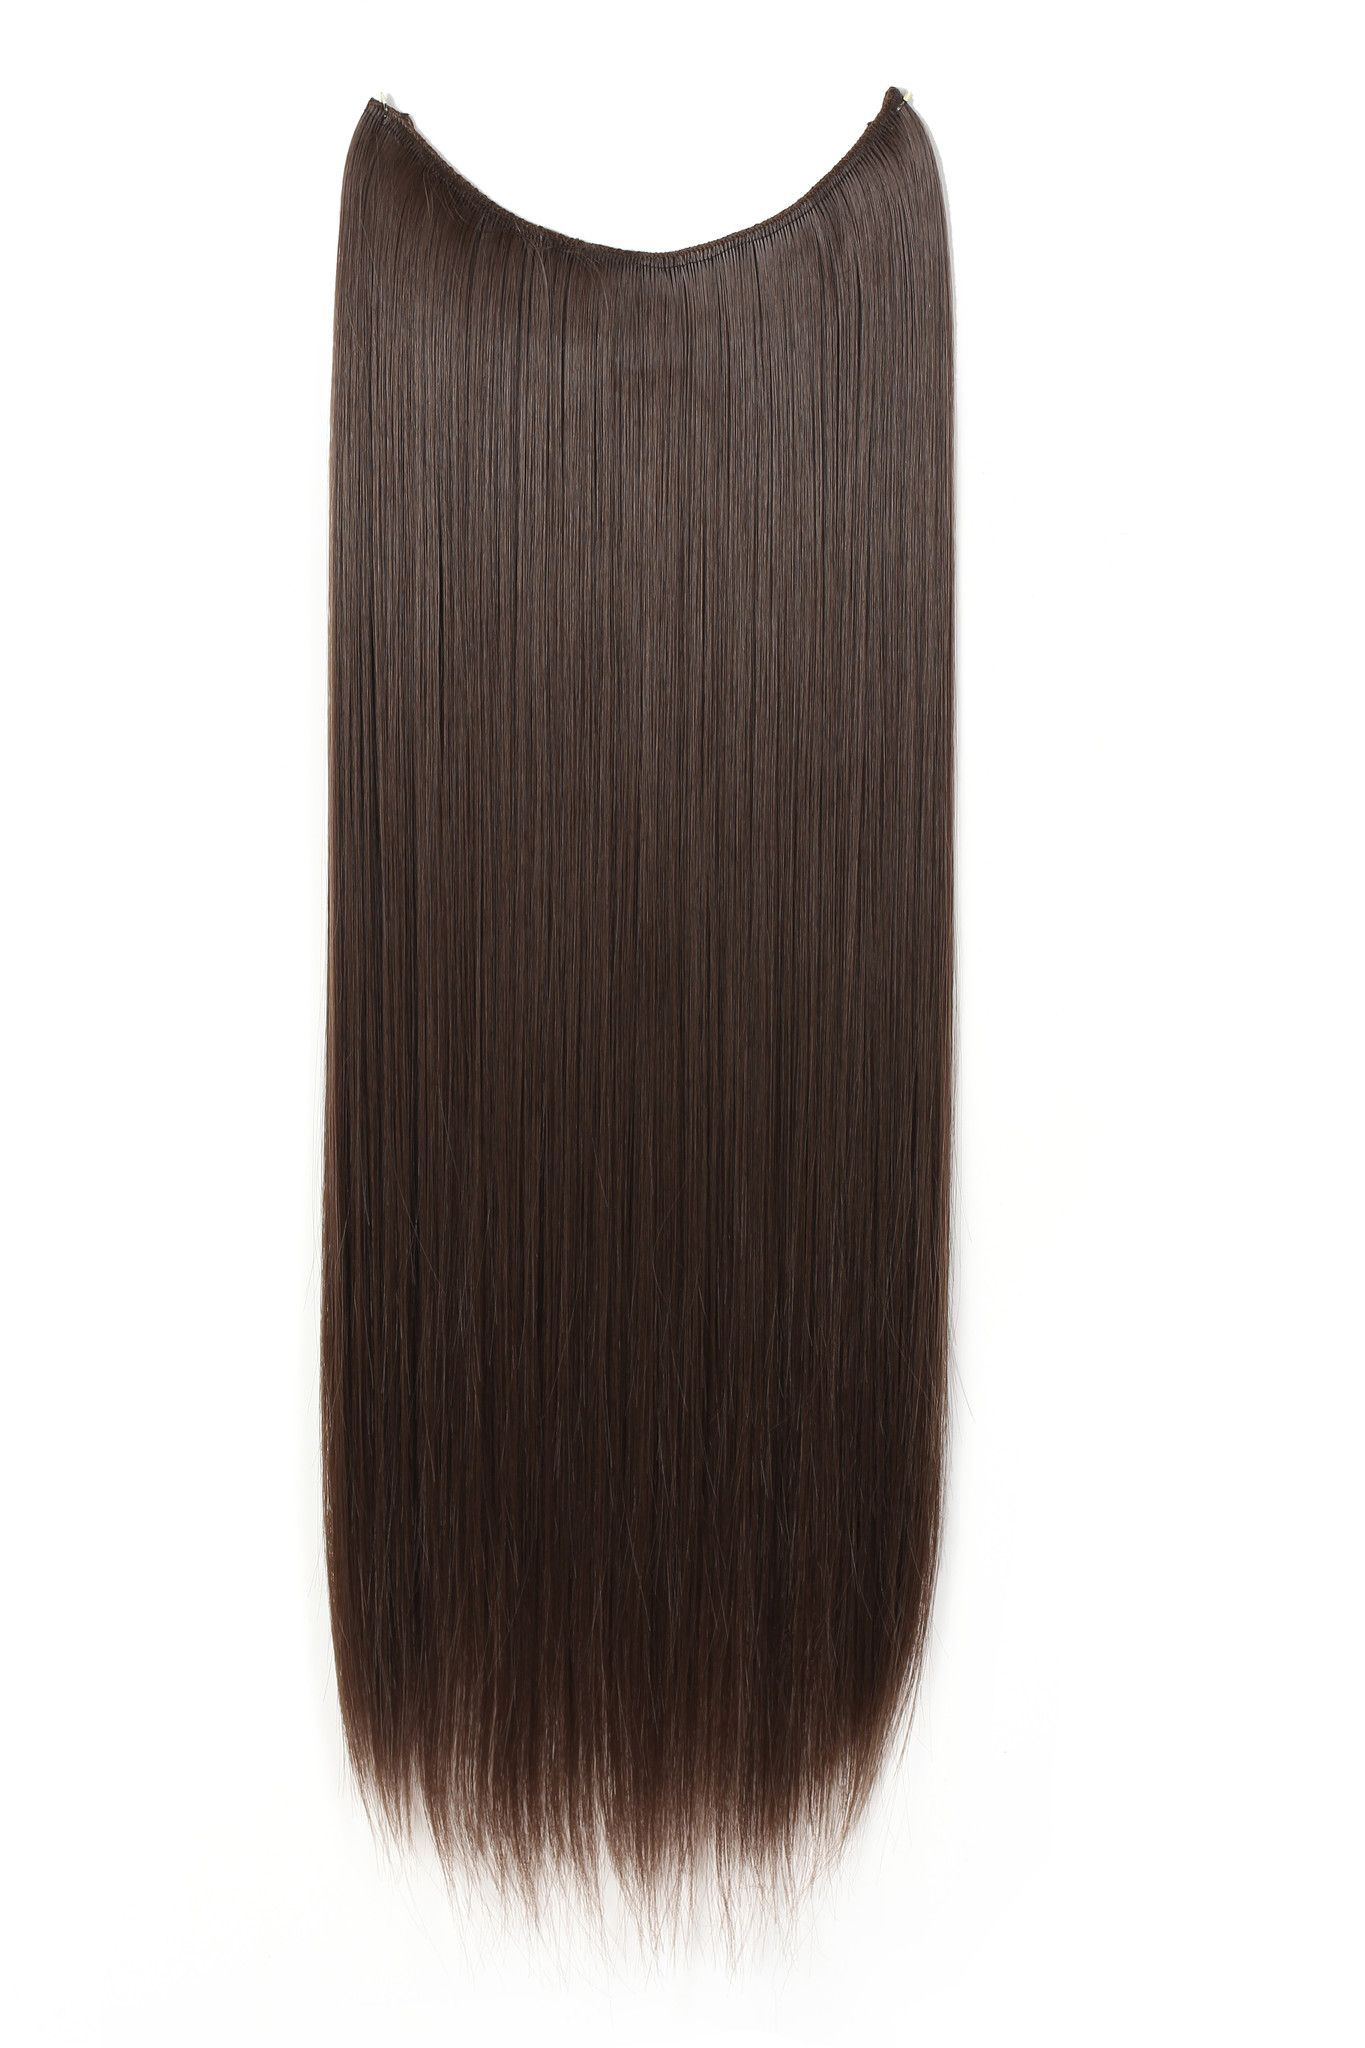 24 straight synthetic hair extensions transparent wire no model this onedor straight synthetic hair extension was made by high quality synthetic heat resisting fiber pmusecretfo Gallery